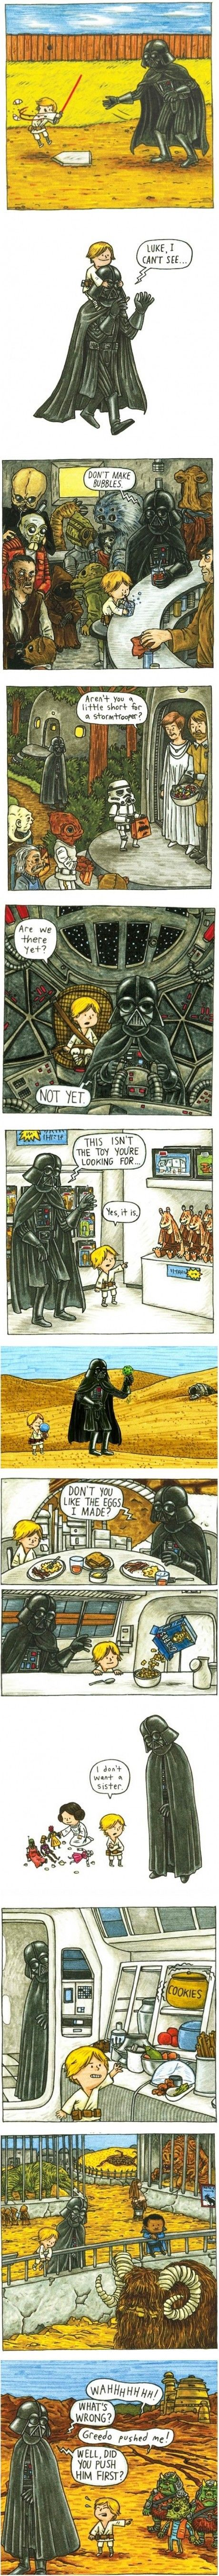 If only Darth Vader was in his son's life...